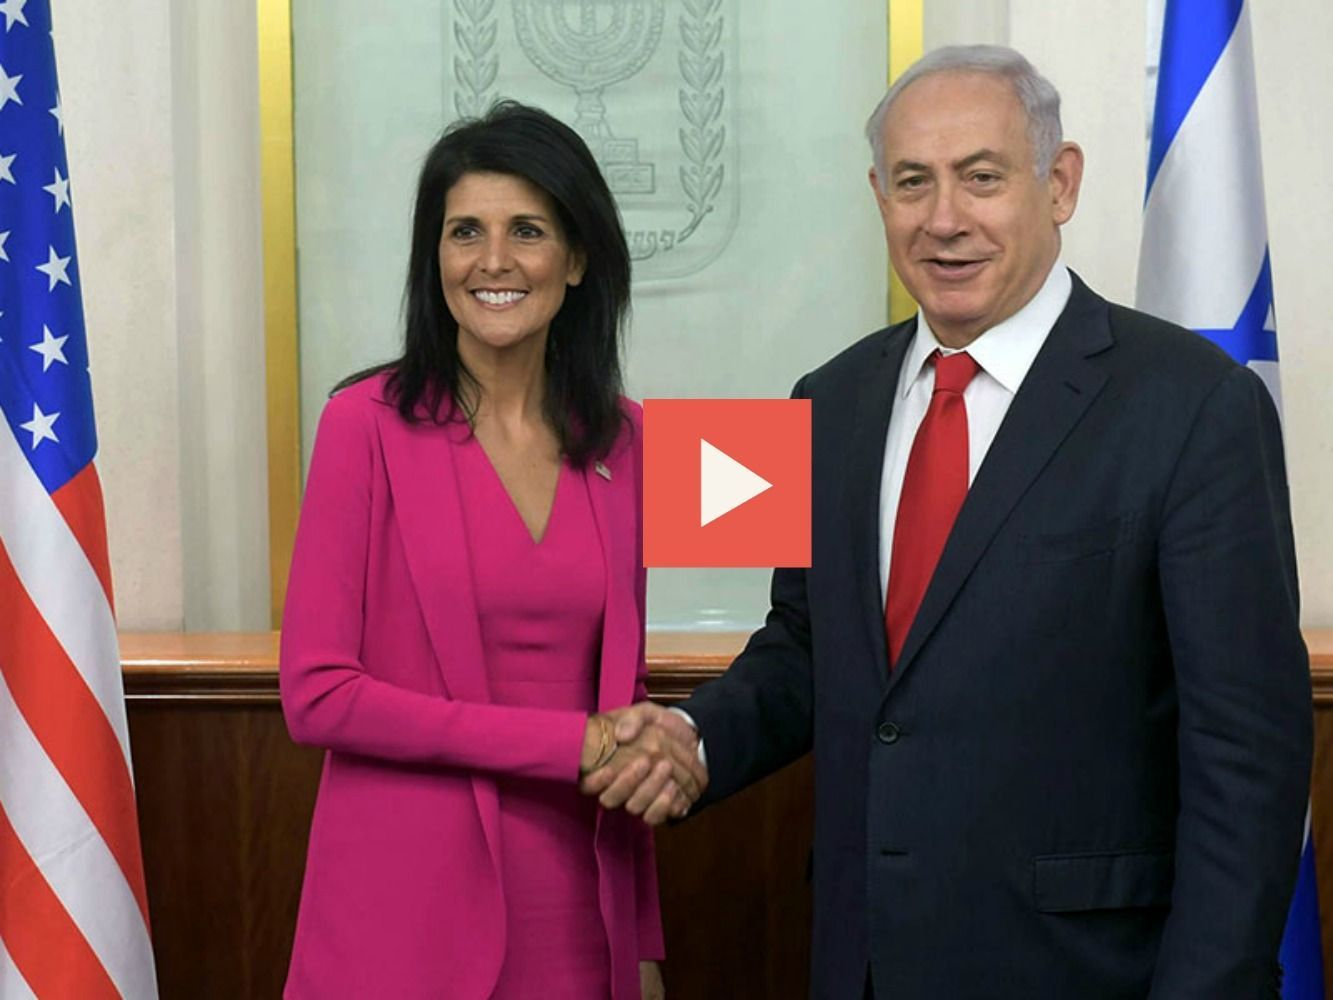 UN Ambassador Nikki Haley: It Is A New Day For Israel In ...